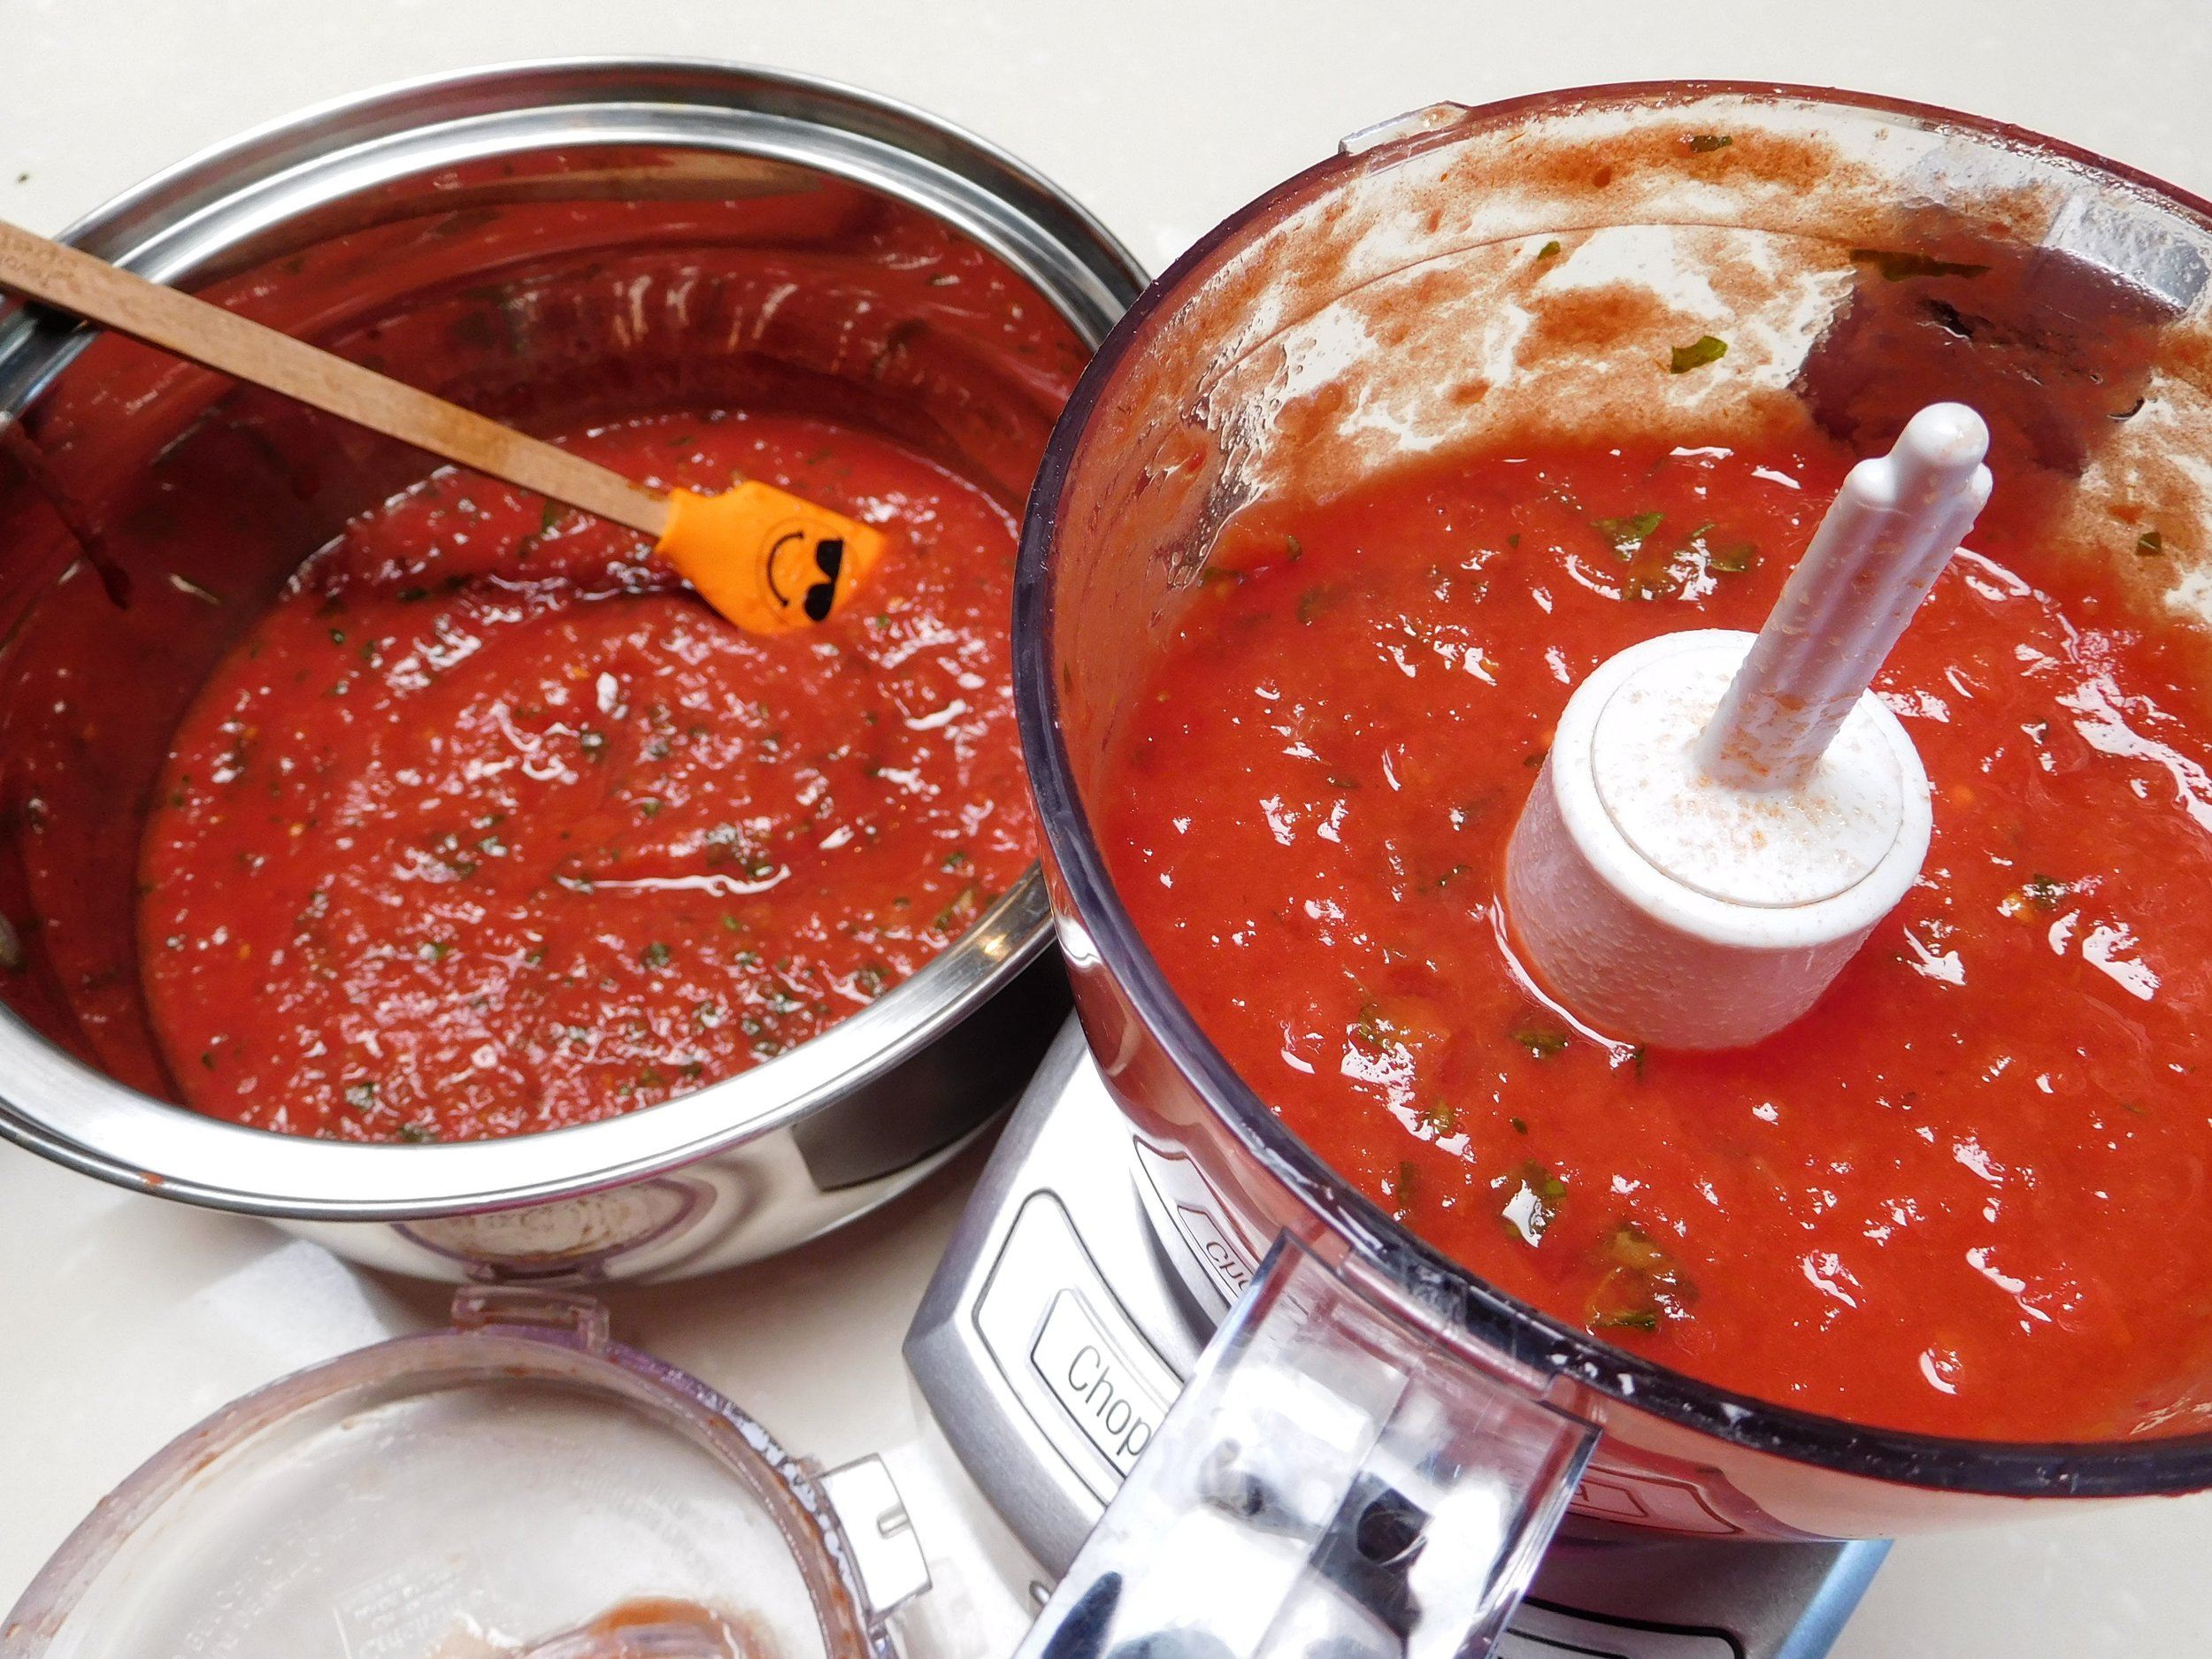 tomato basil reduction in cuisinart.JPG